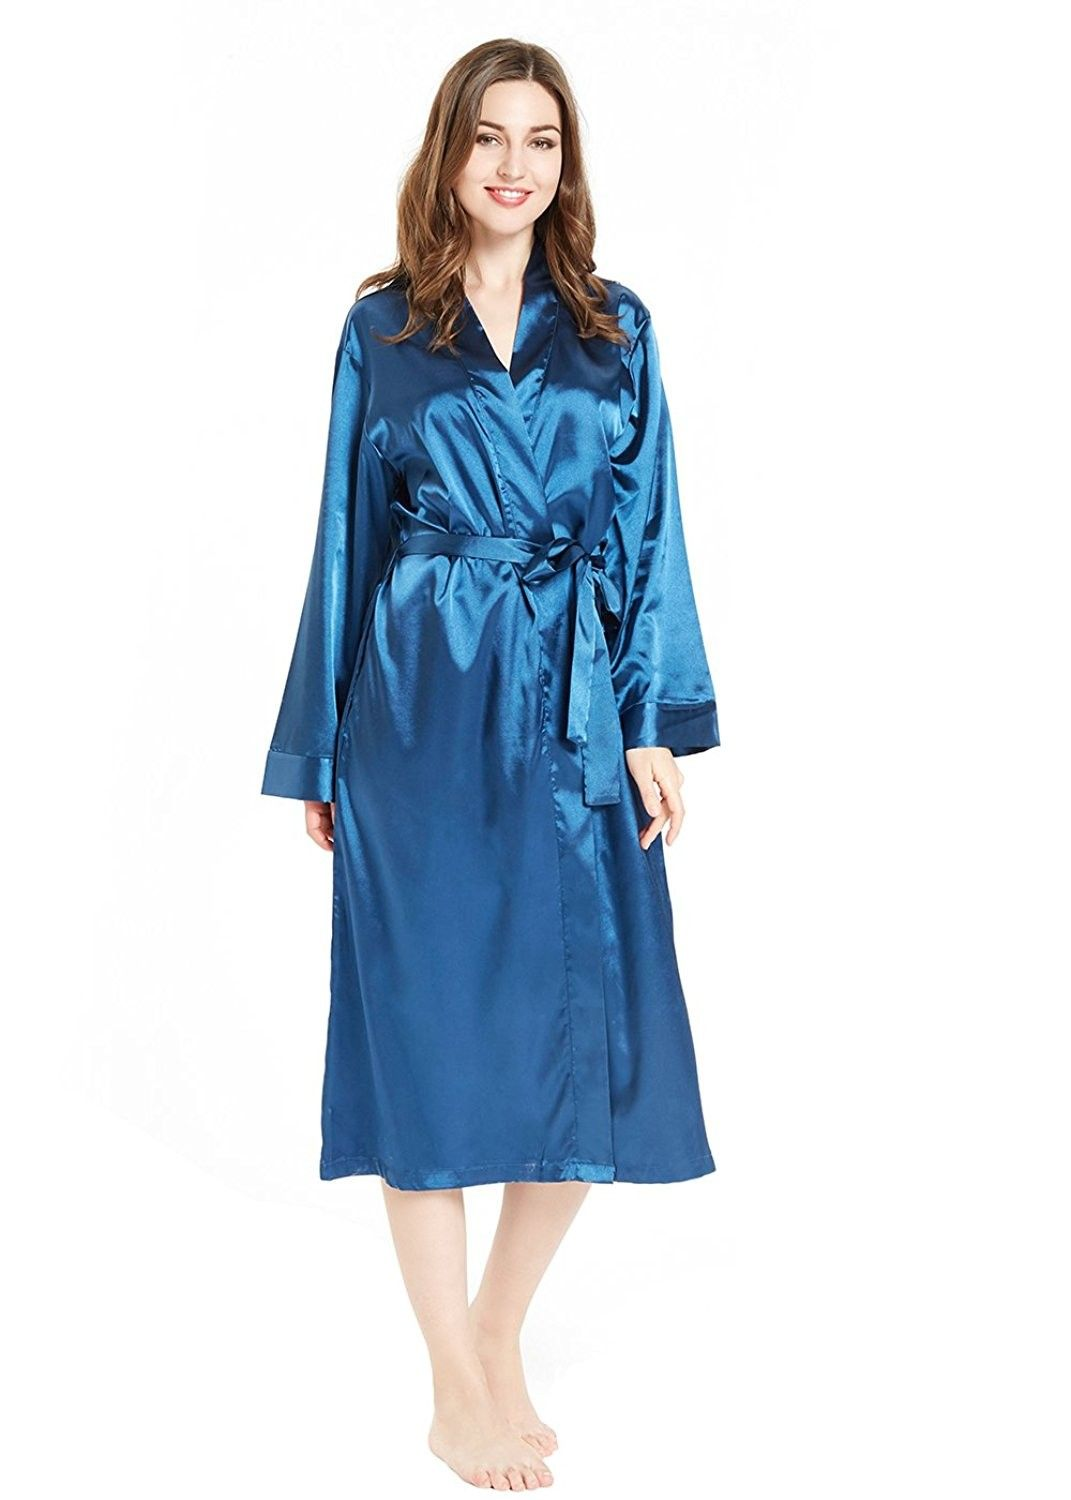 8e65627e2842e Silky Satin Robe for Women- Long Bathrobe Full Length V-Neck ...